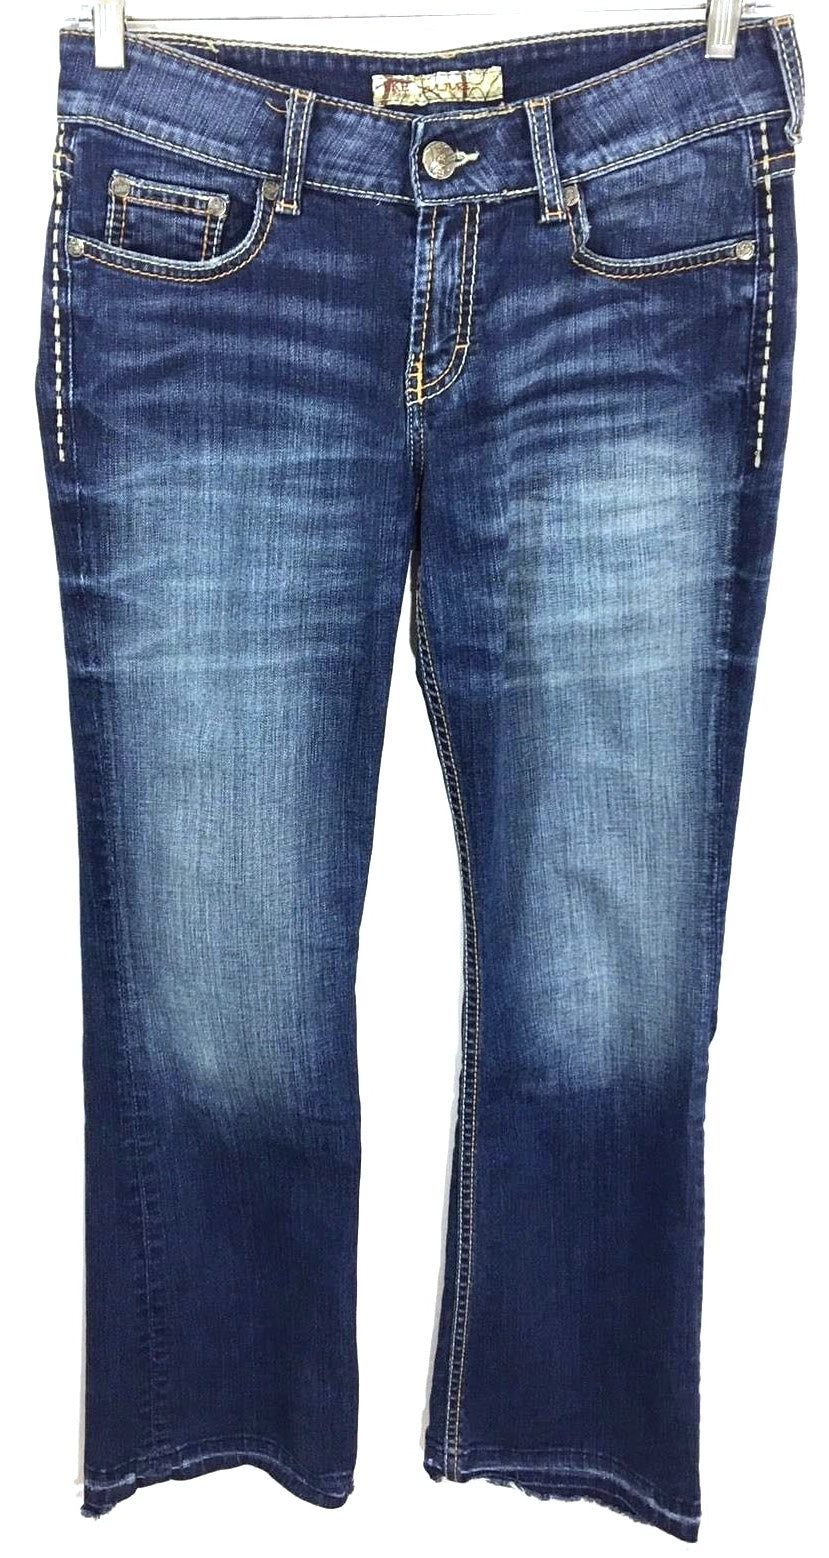 BKE Buckle Denim Culture Boot Cut Jeans Dark Wash Stretch Women's Size 29 x 29.5 - Preowned - FunkyCrap Boutique